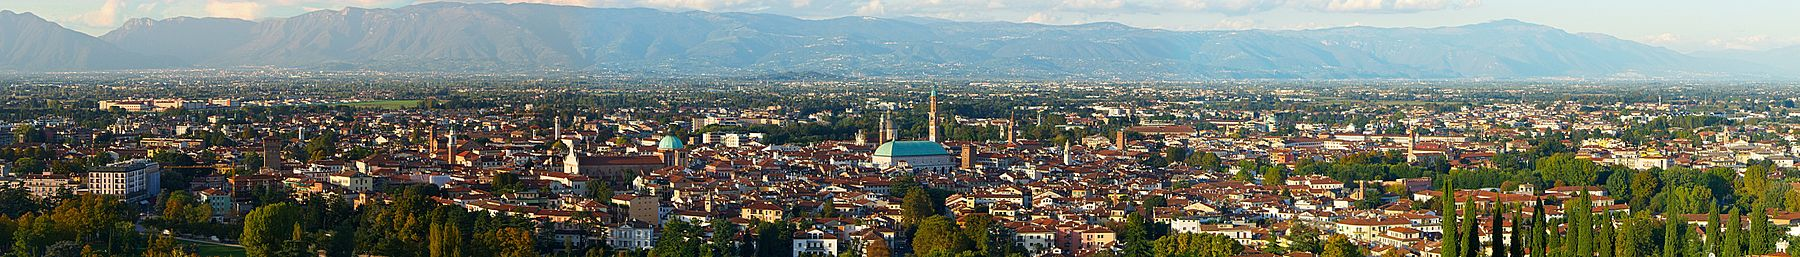 Panorame of Vicenza.jpg